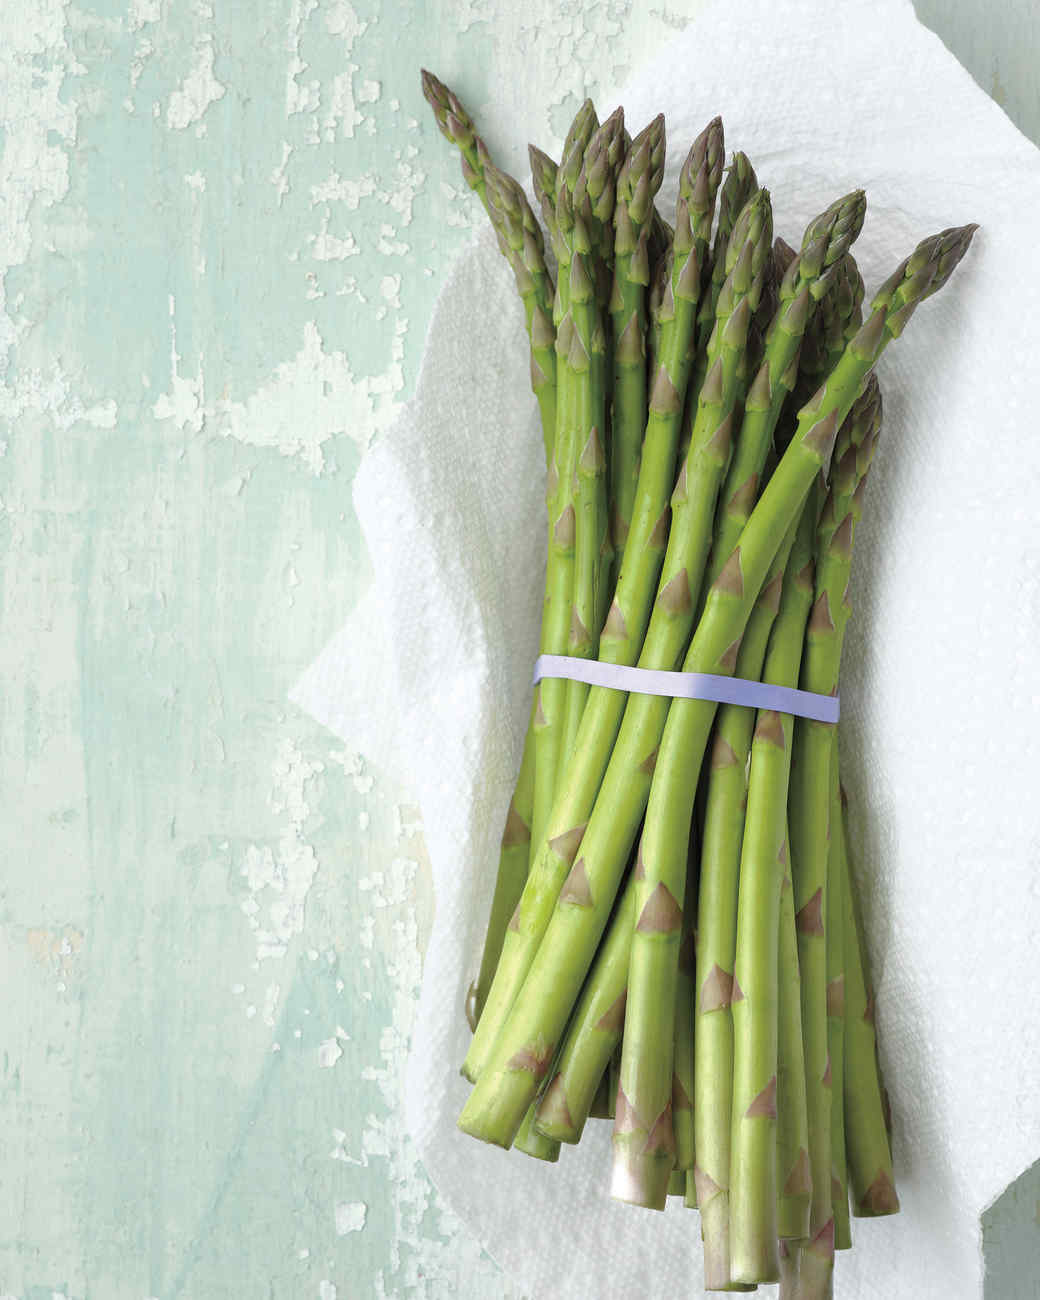 Asparagus Recipes: 23 Delicious Ways To Cook Our Favorite